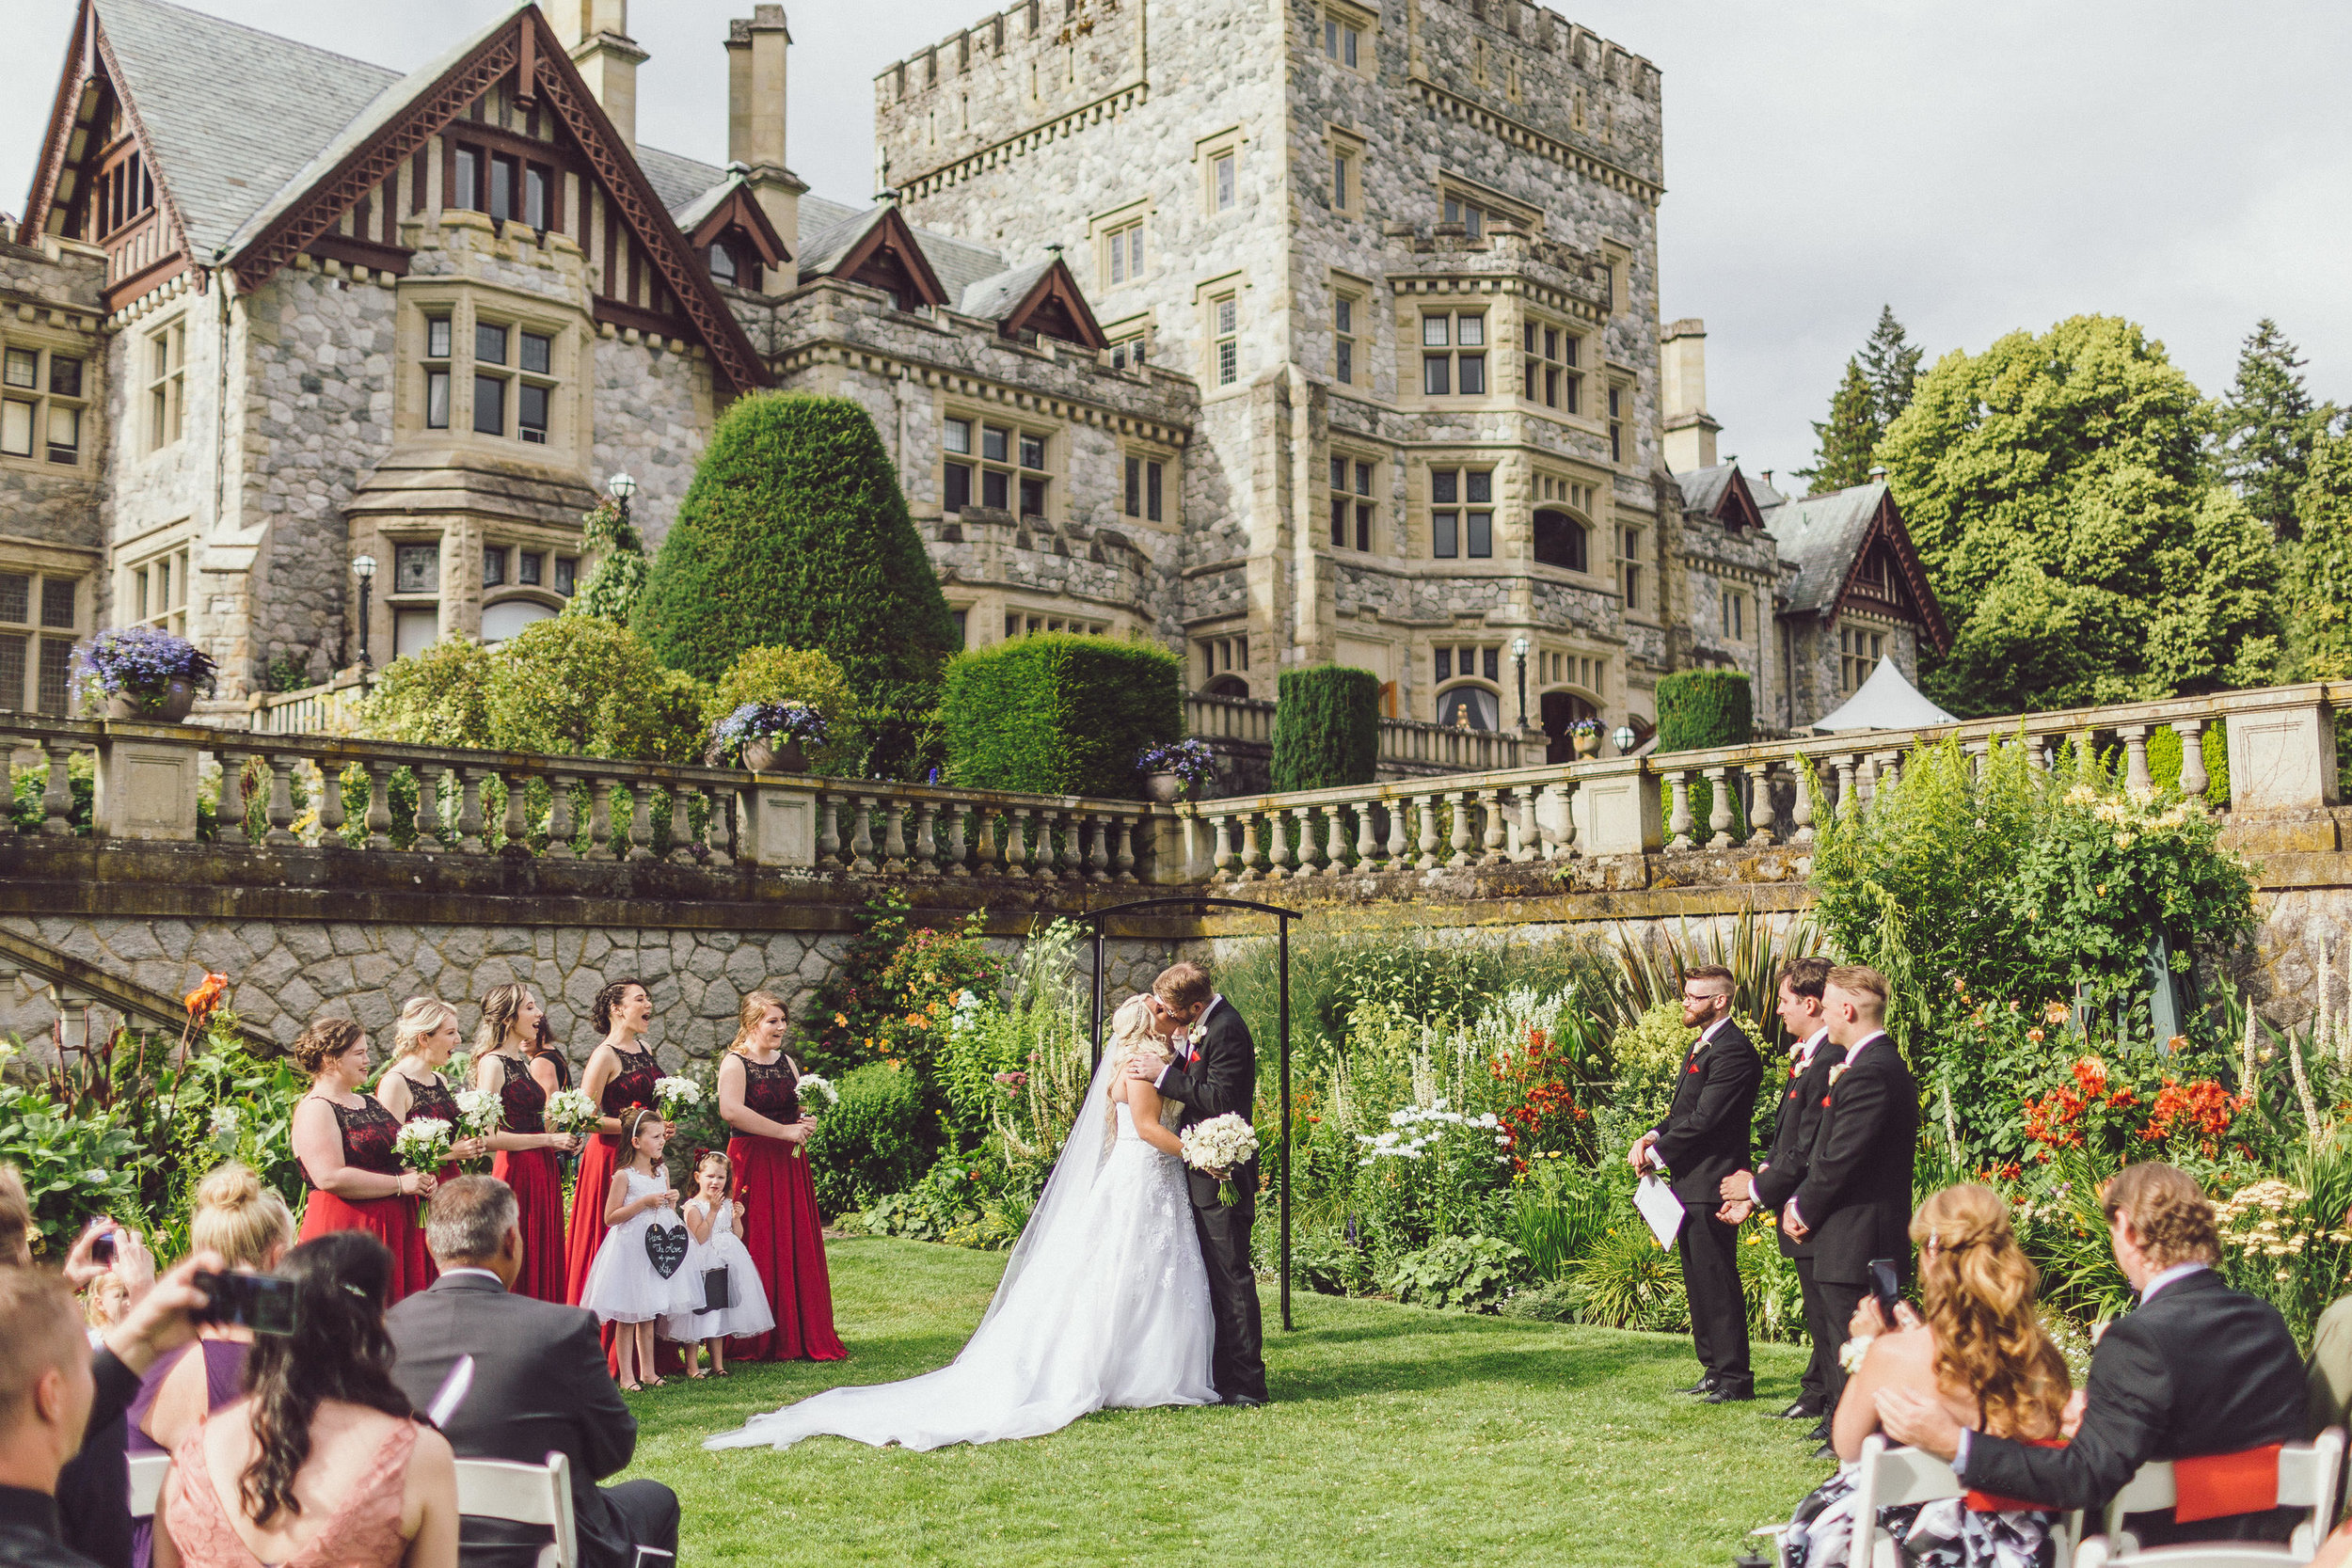 Stephanie & Riley's Wedding - At the beautiful Hatley Castle in Victoria, BC